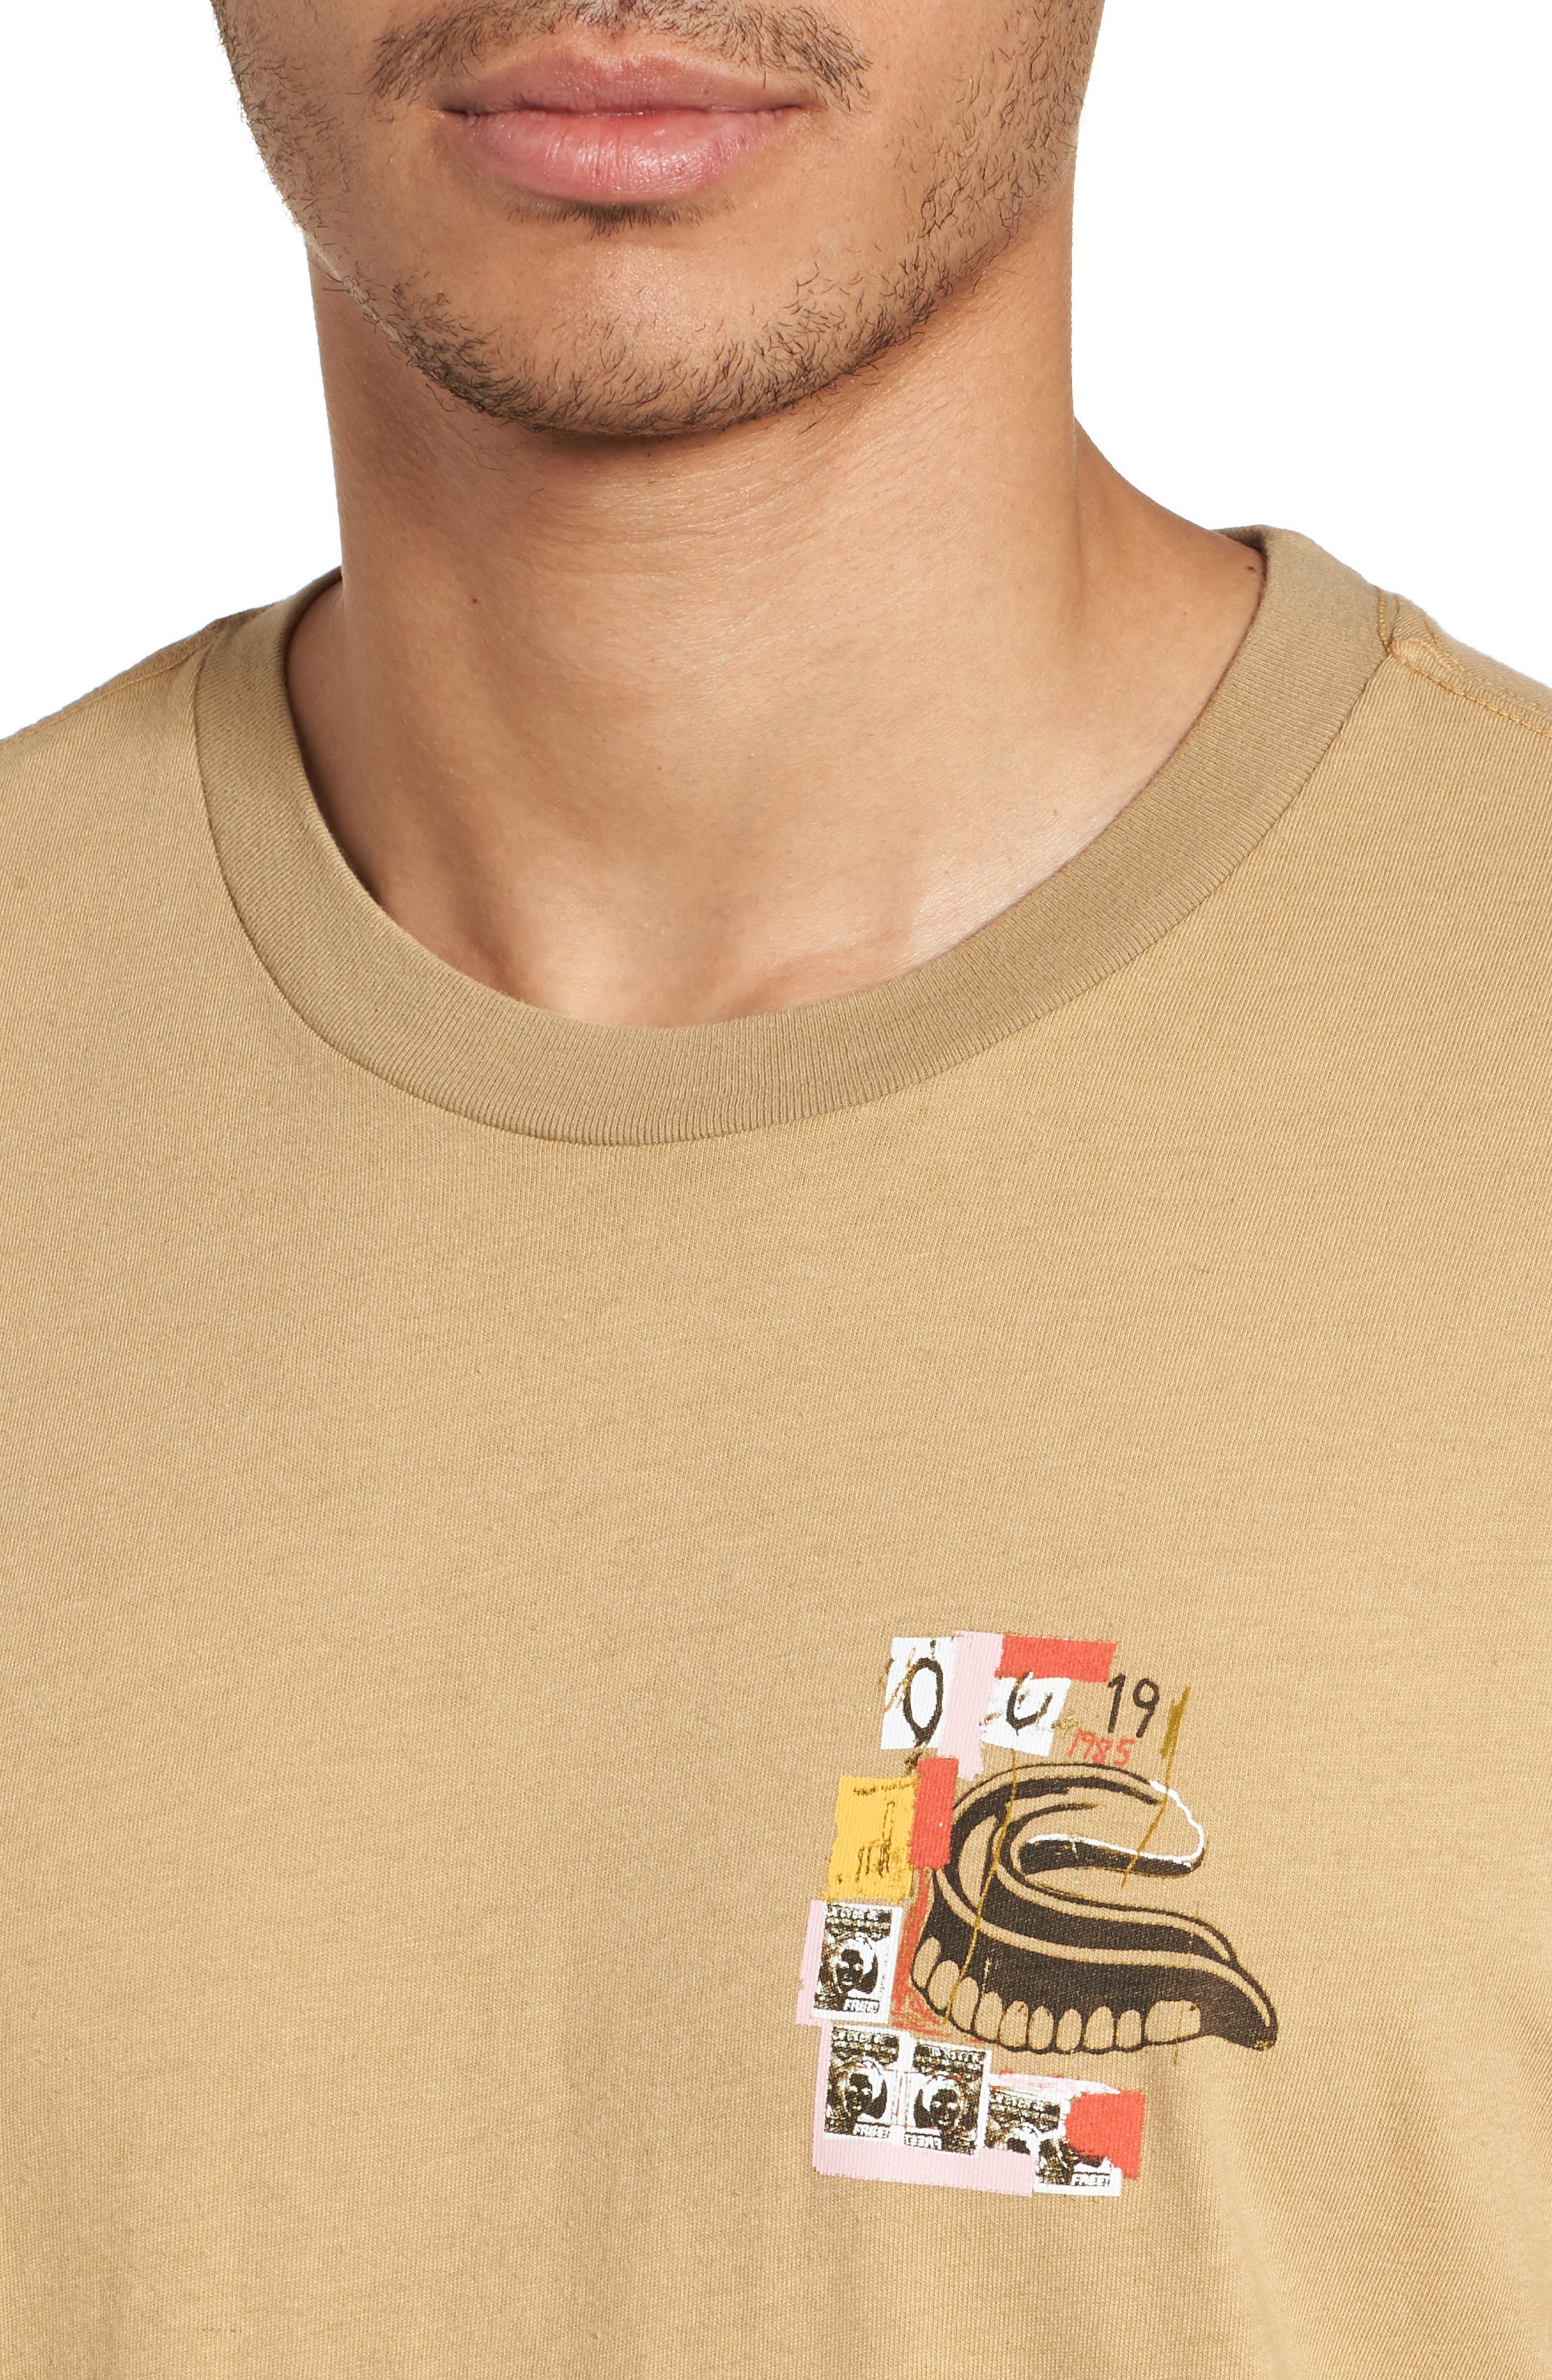 x Warhol Eighty Graphic T-Shirt,                             Alternate thumbnail 4, color,                             Straw